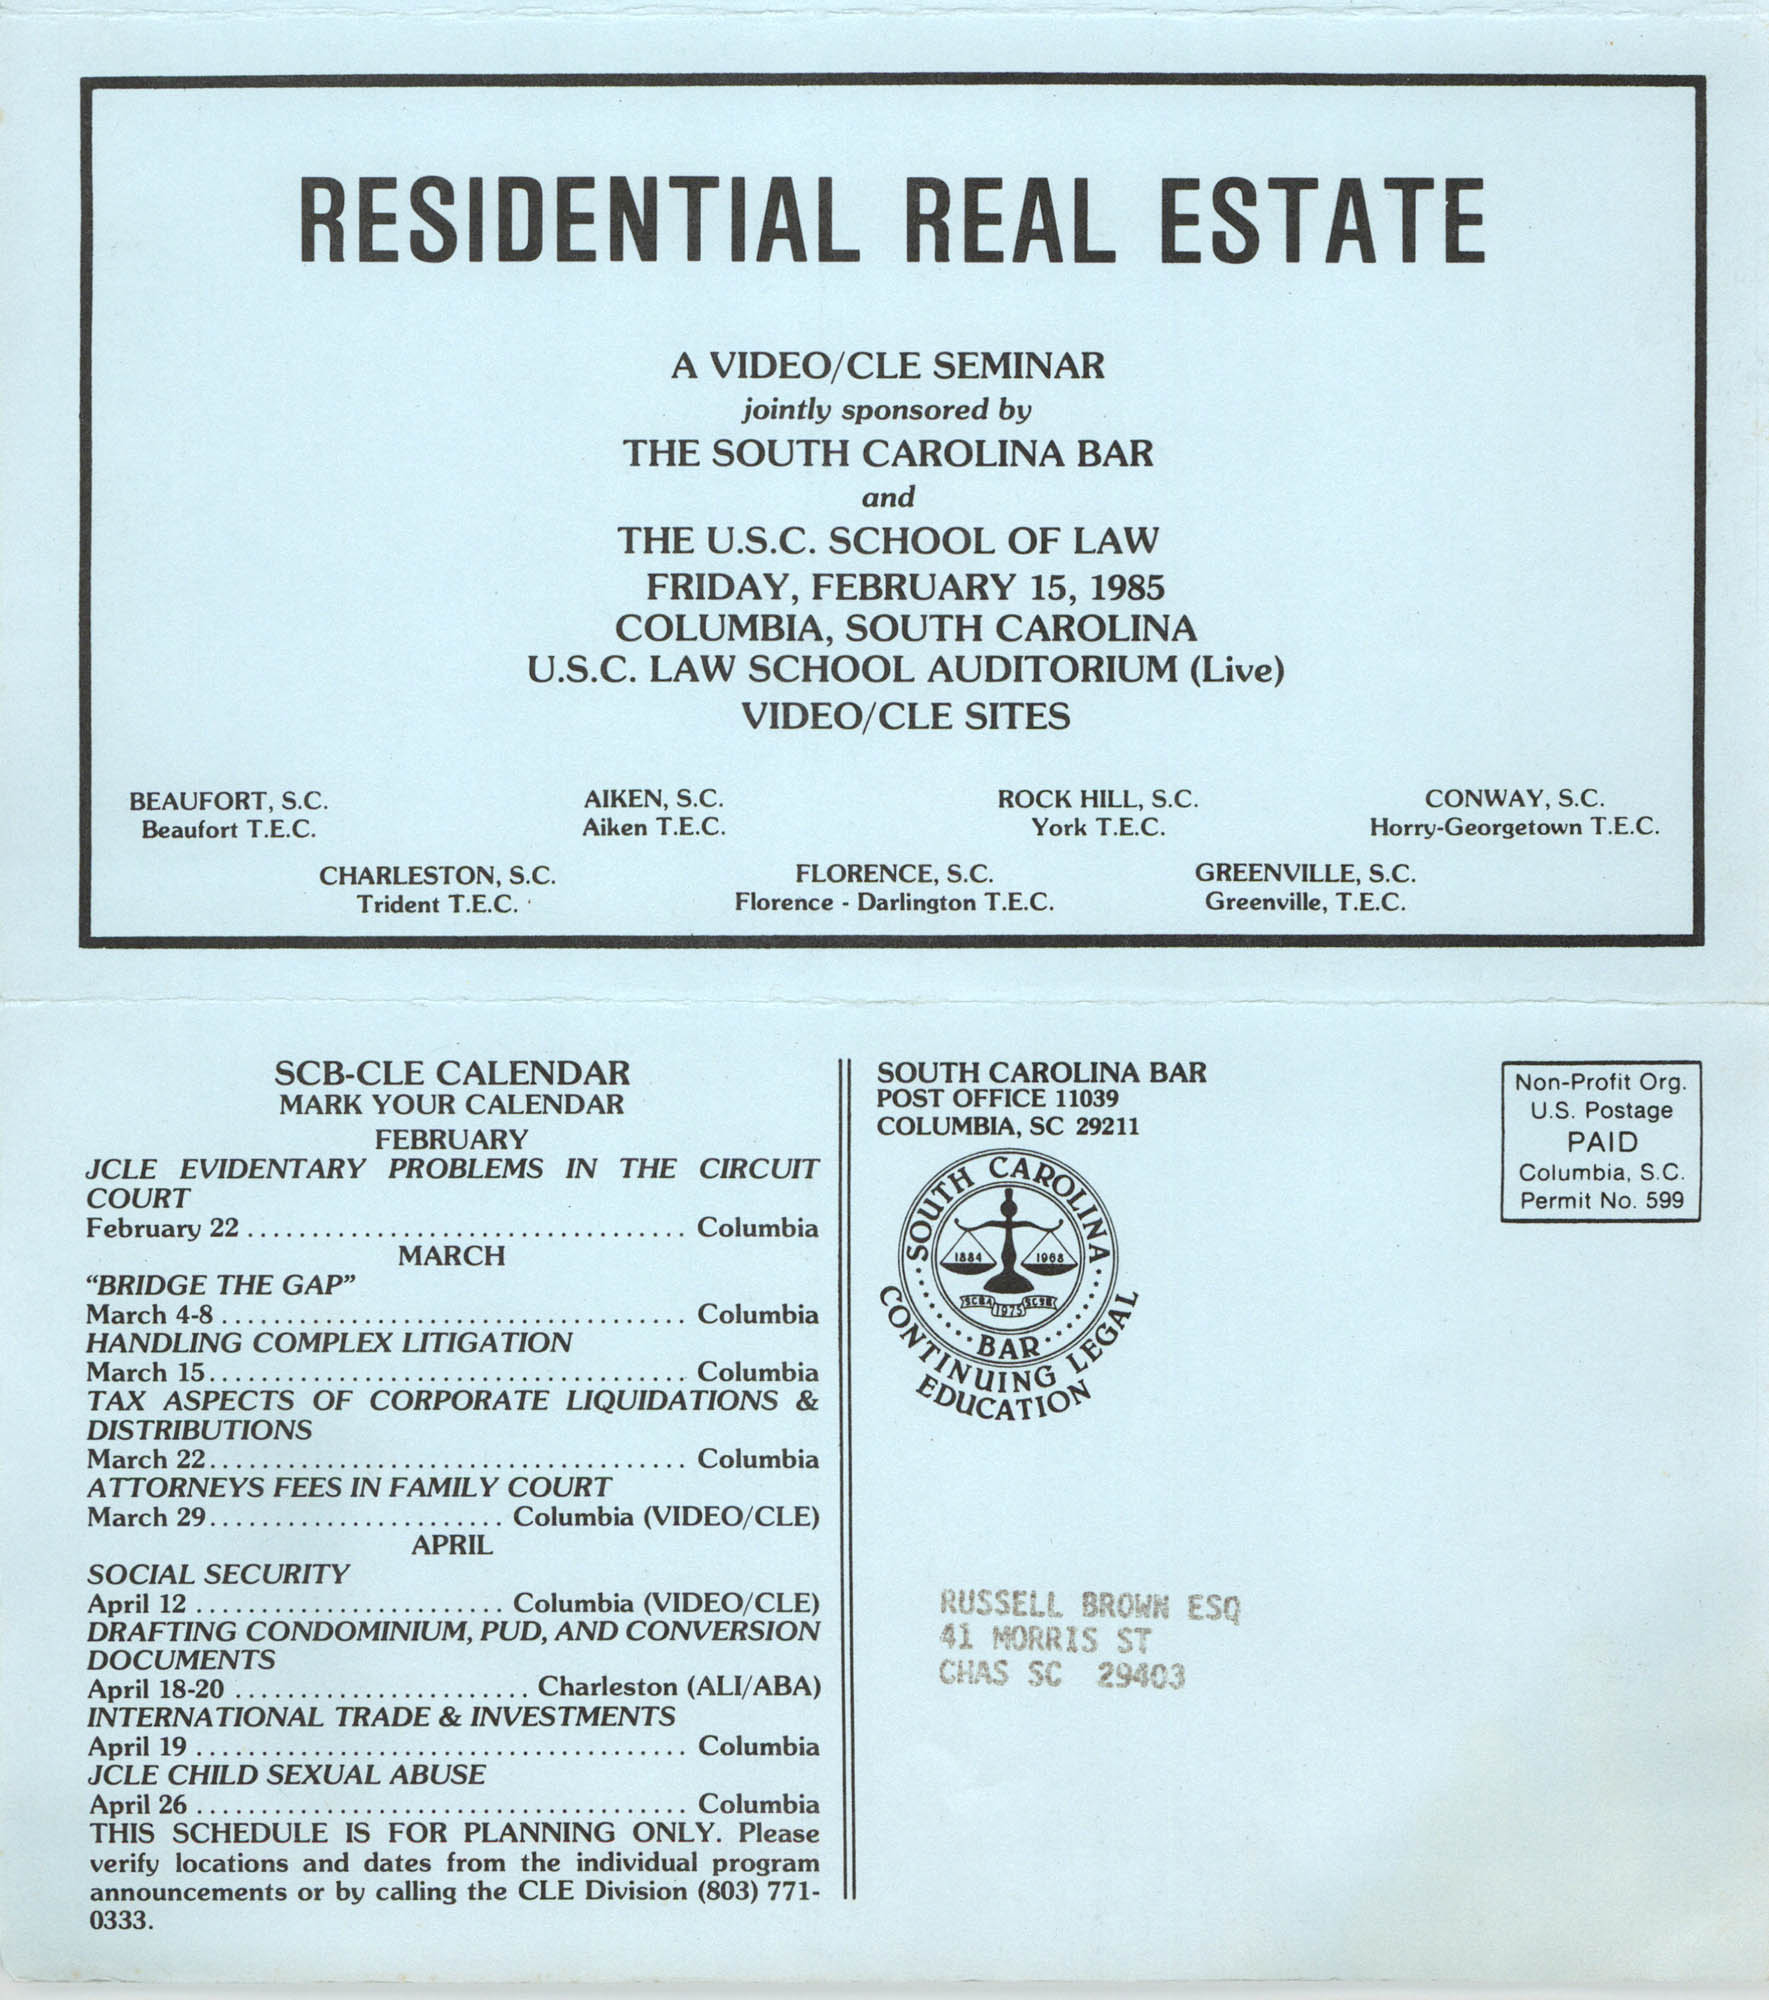 Understanding Residential Real Estate, Video/CLE Seminar Pamphlet, February 15, 1985, Russell Brown